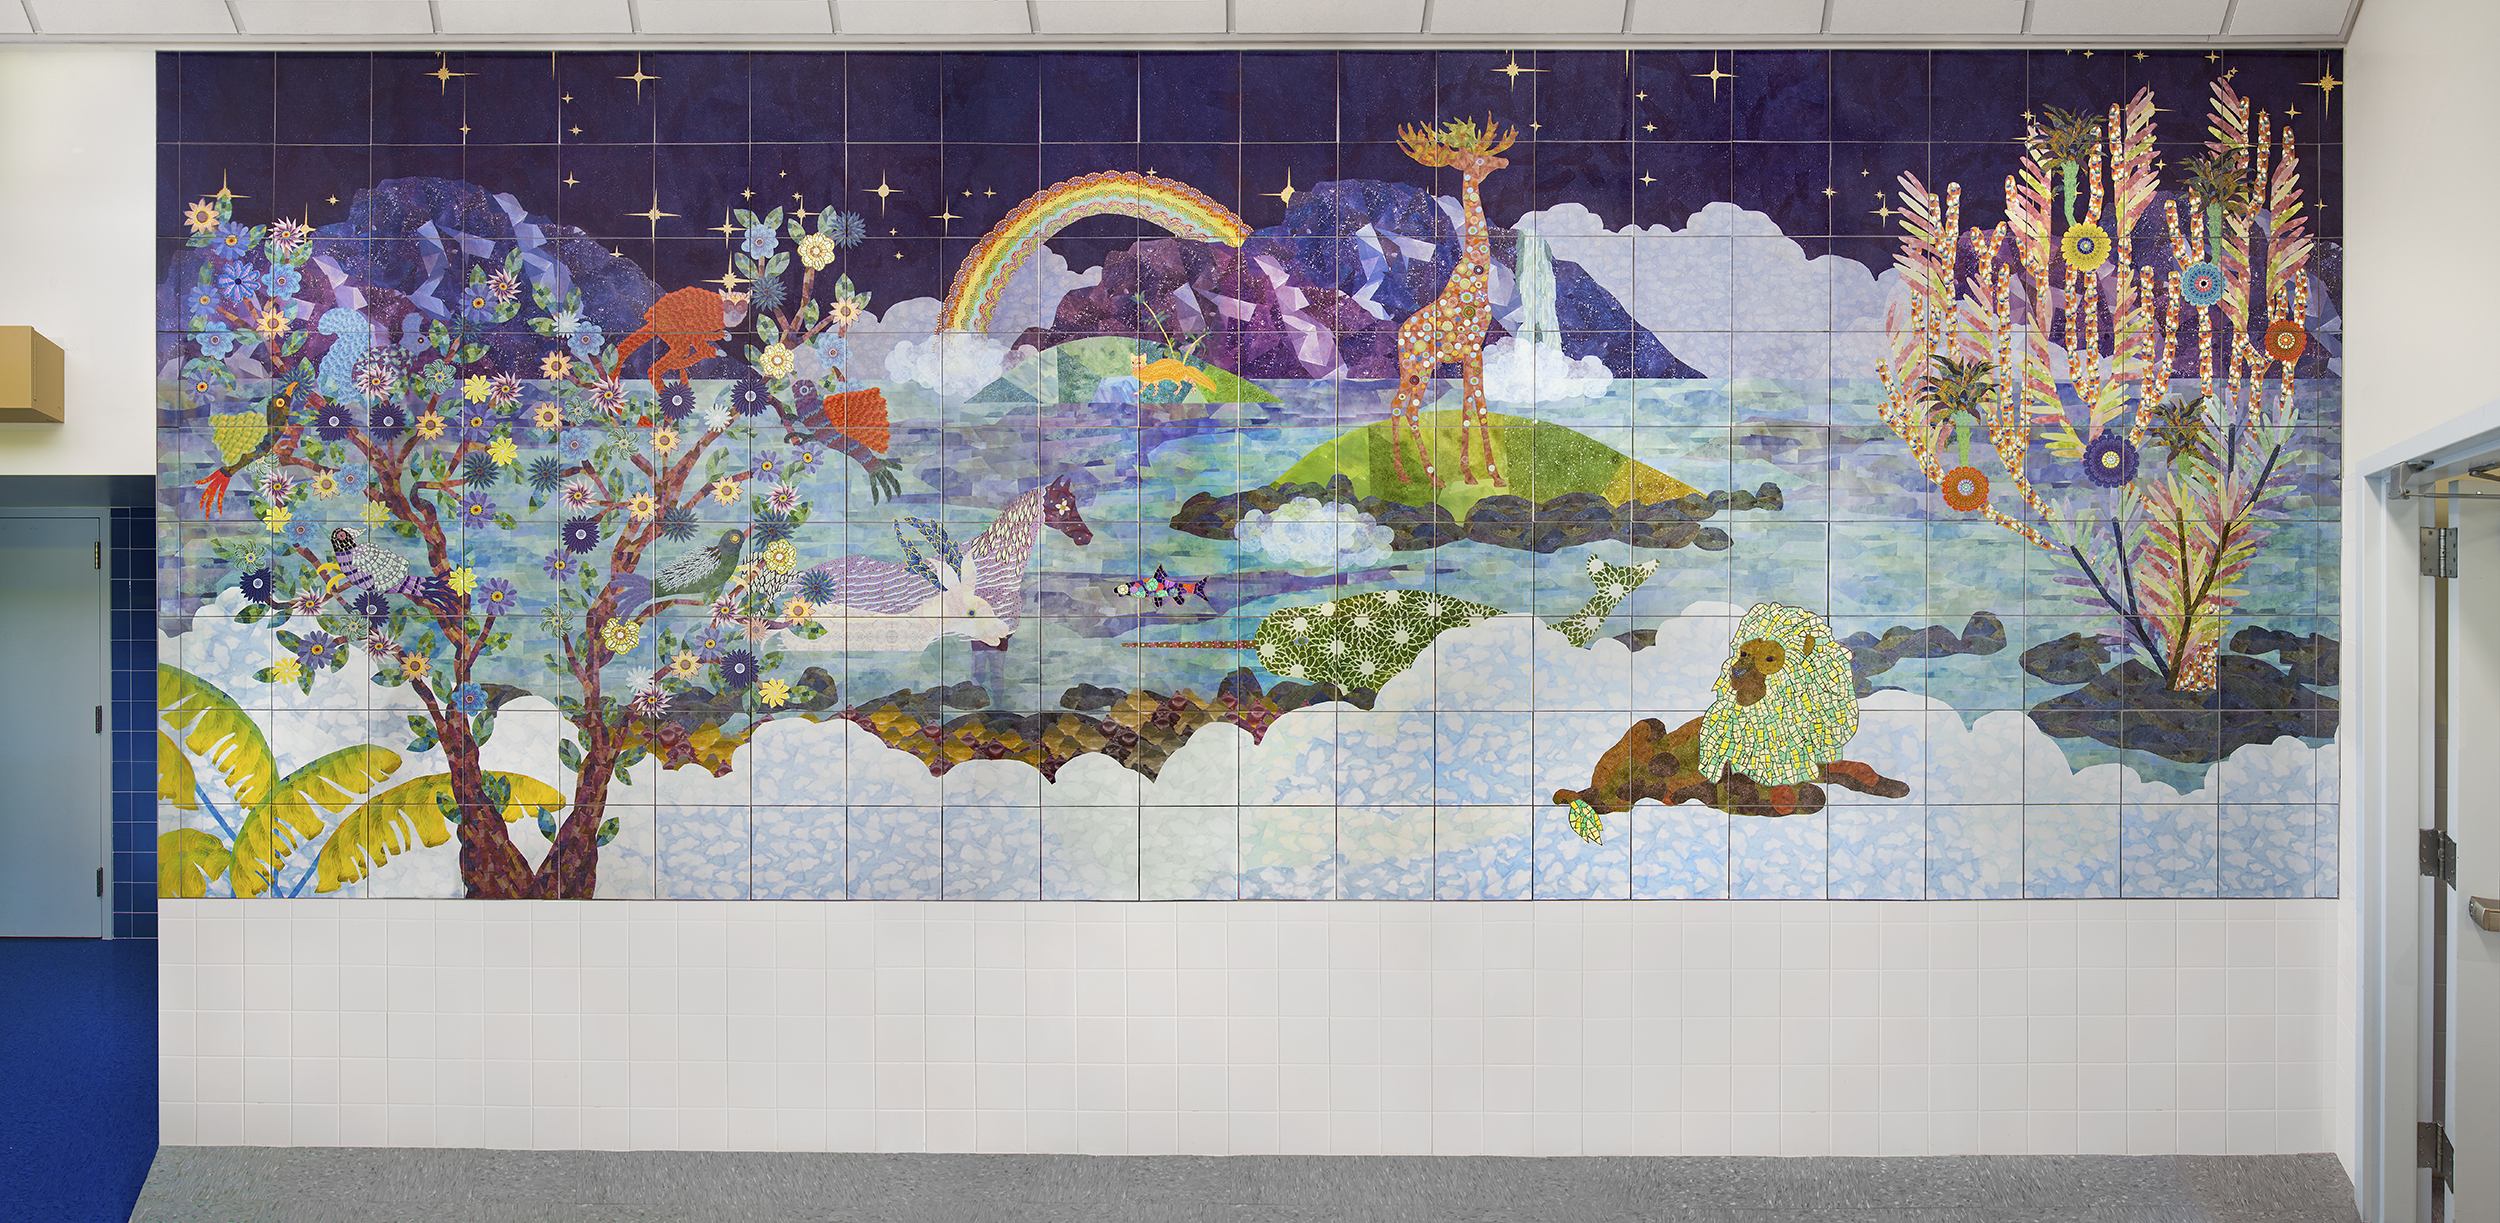 Daydreams of Paper Animals  Ceramic Tile and Smalti Glass Installation View P.S.\I.S. 49Q, NYC Commissioned by Public Art for Public Schools/NYC School Construction Authority, Percent for Art Program 2017